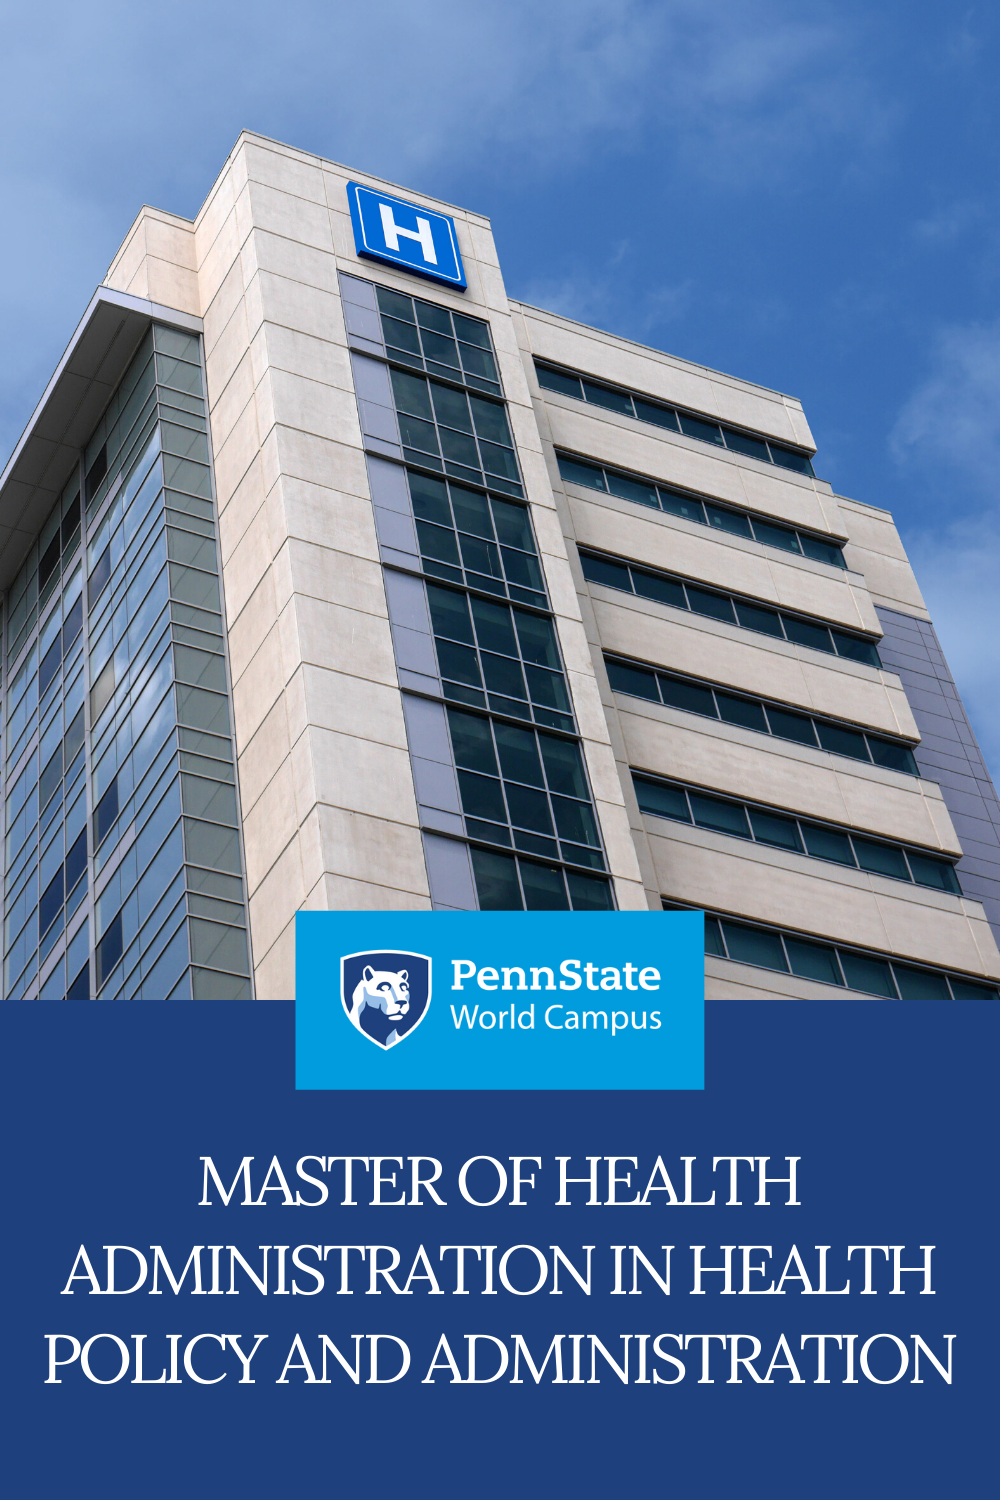 Pin On Degrees And Certificates Online From Penn State World Campus